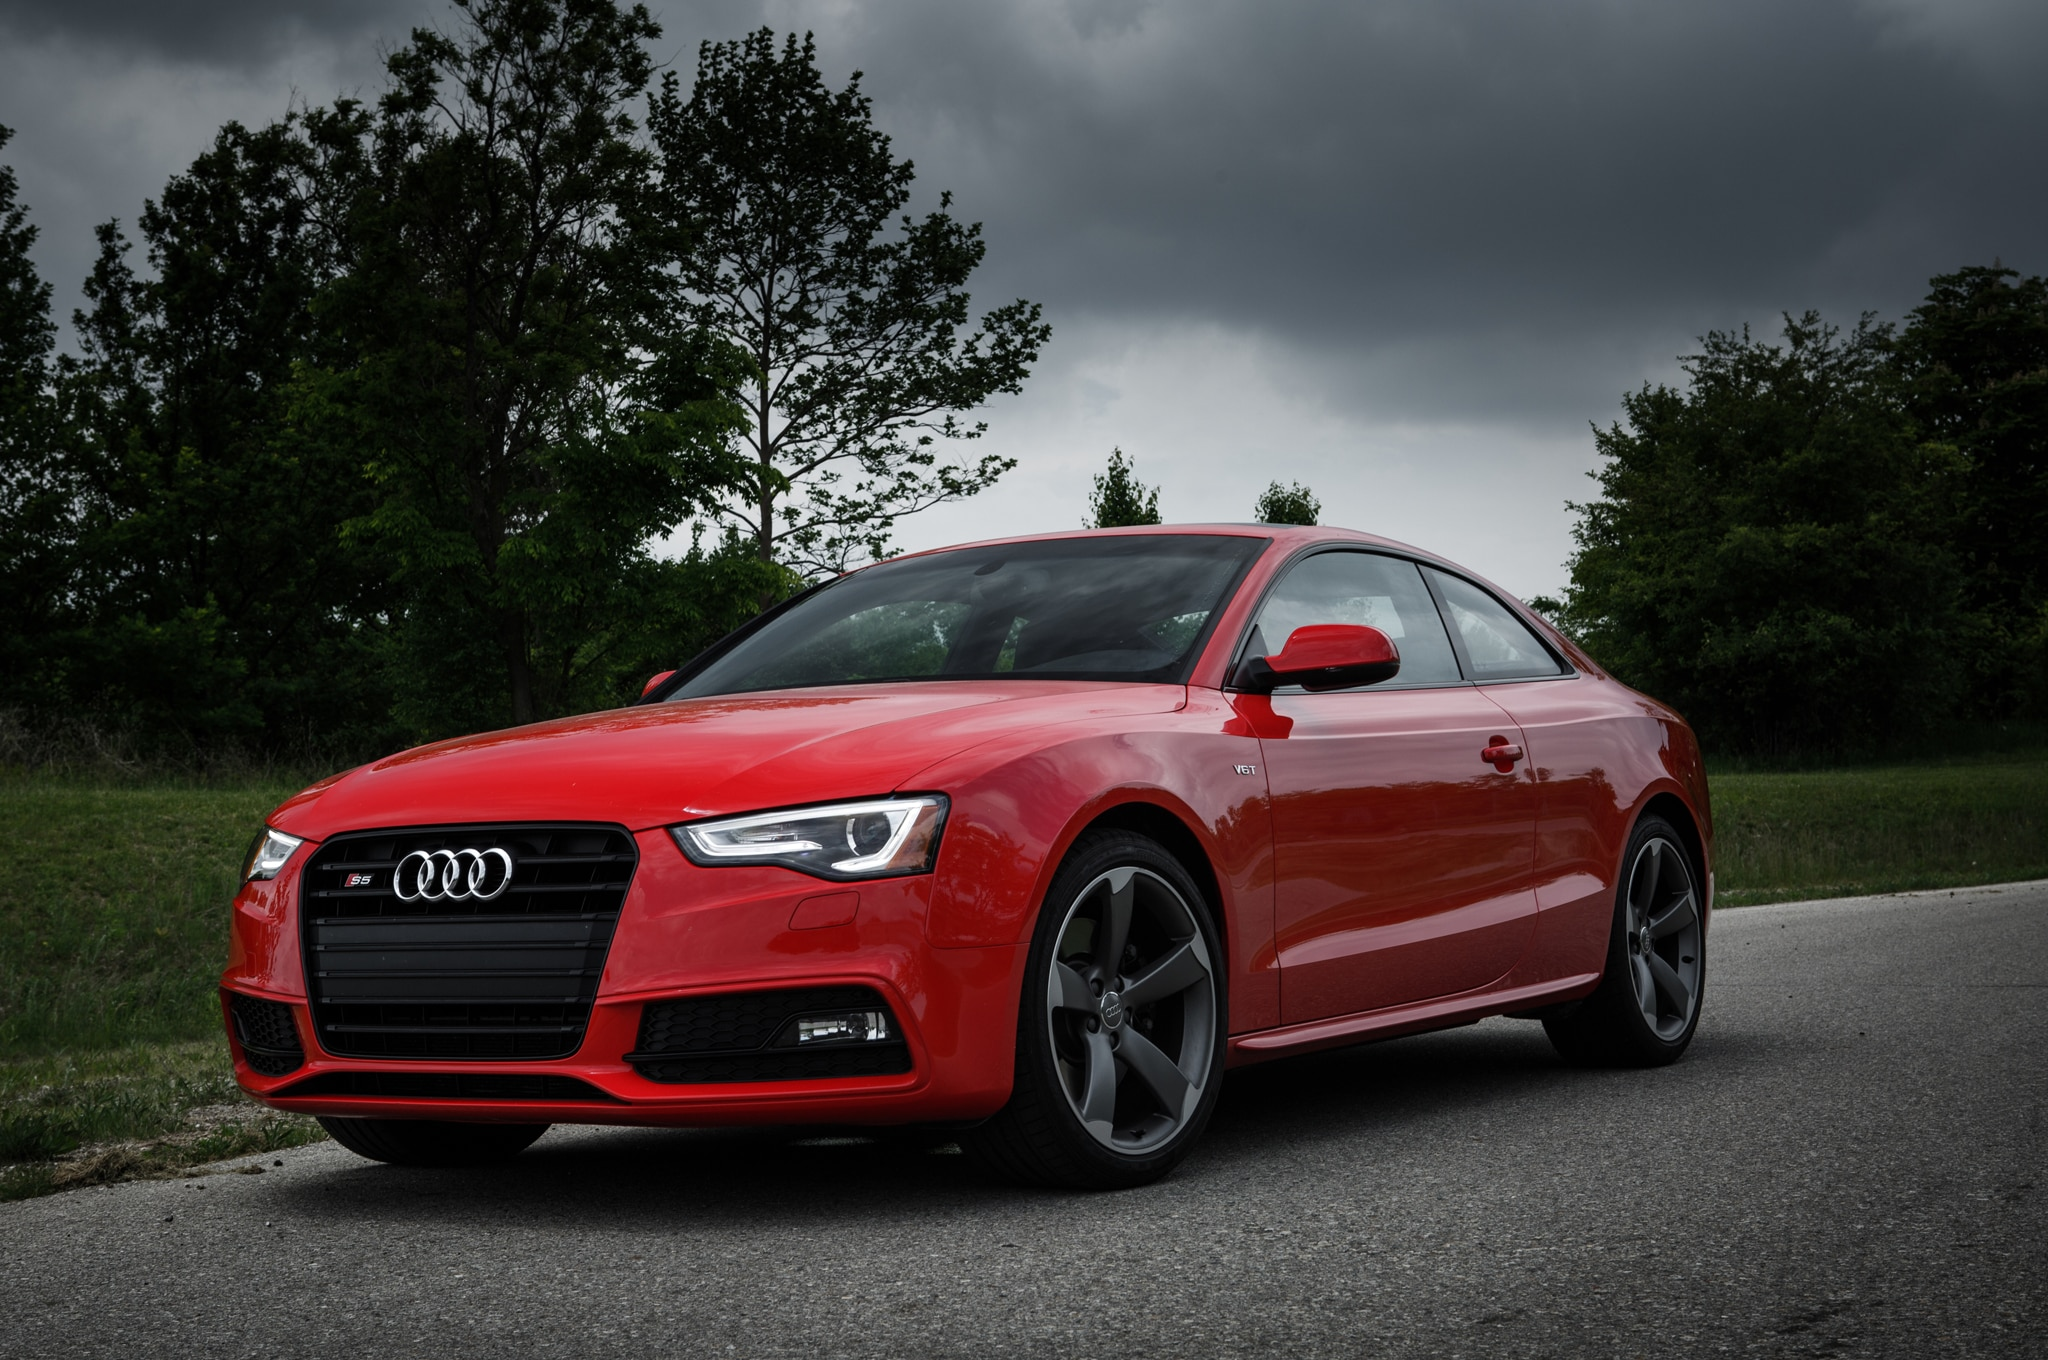 2014 Audi S5 Coupe Front Three Quarters